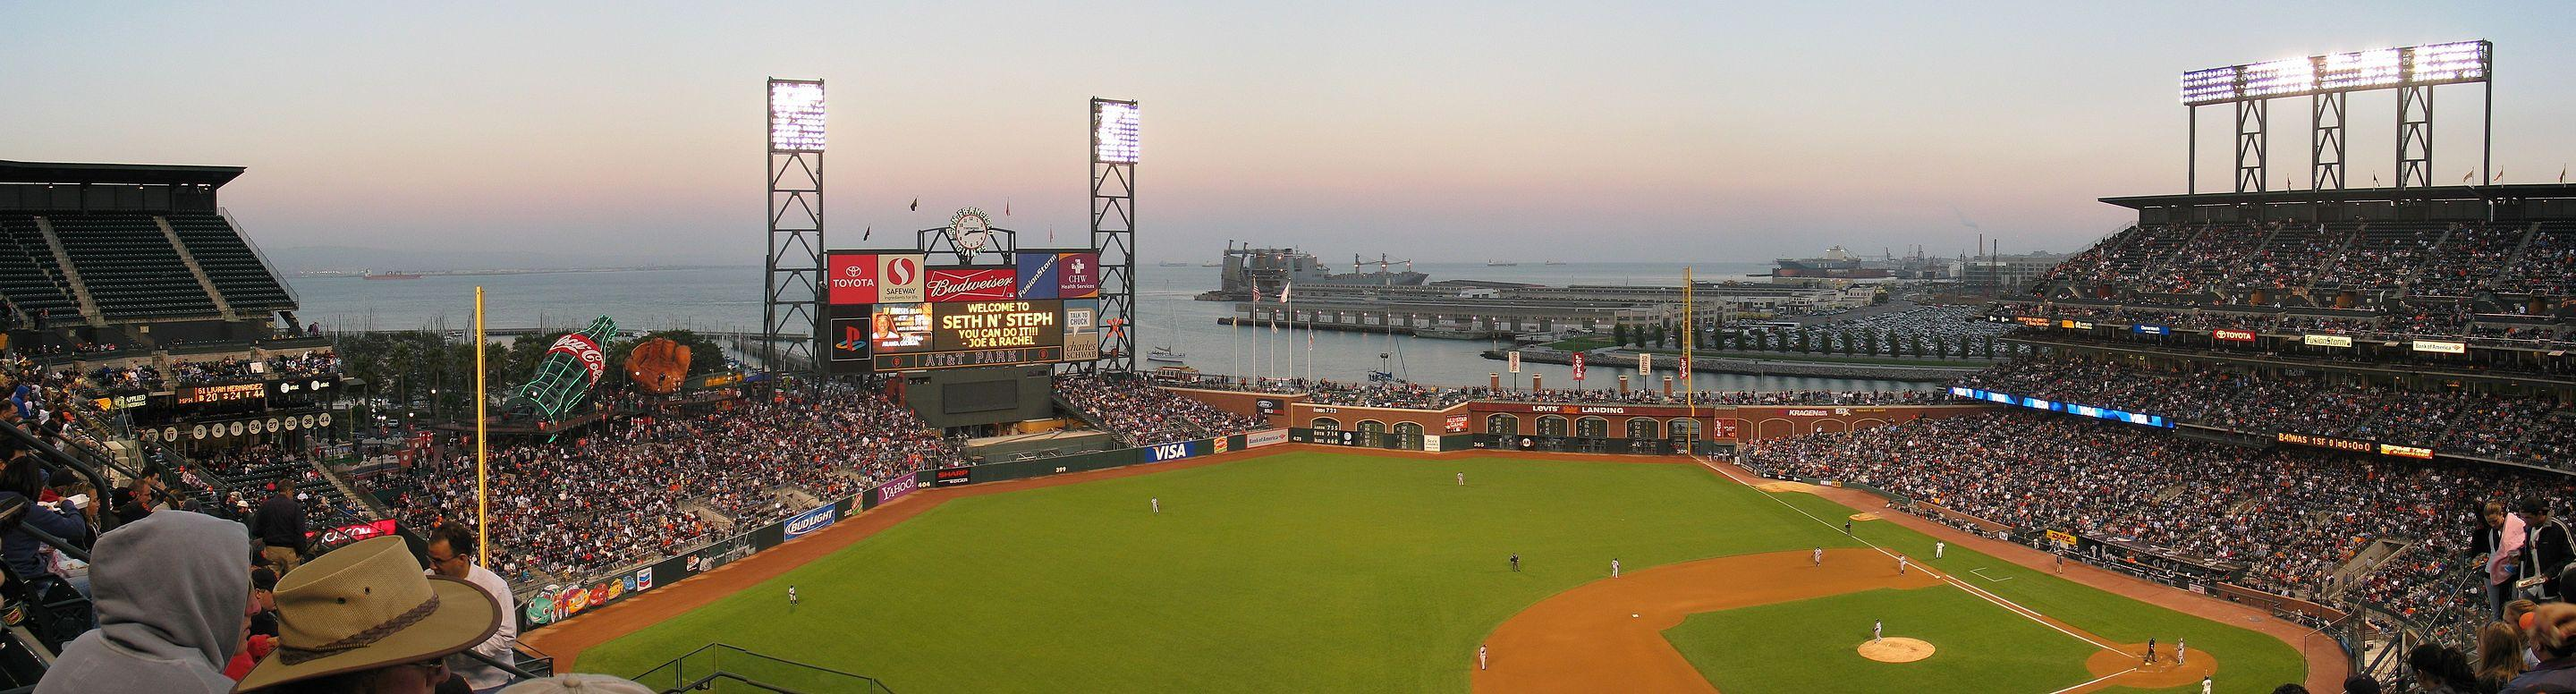 Bacon and Beer Classic at AT&T Park